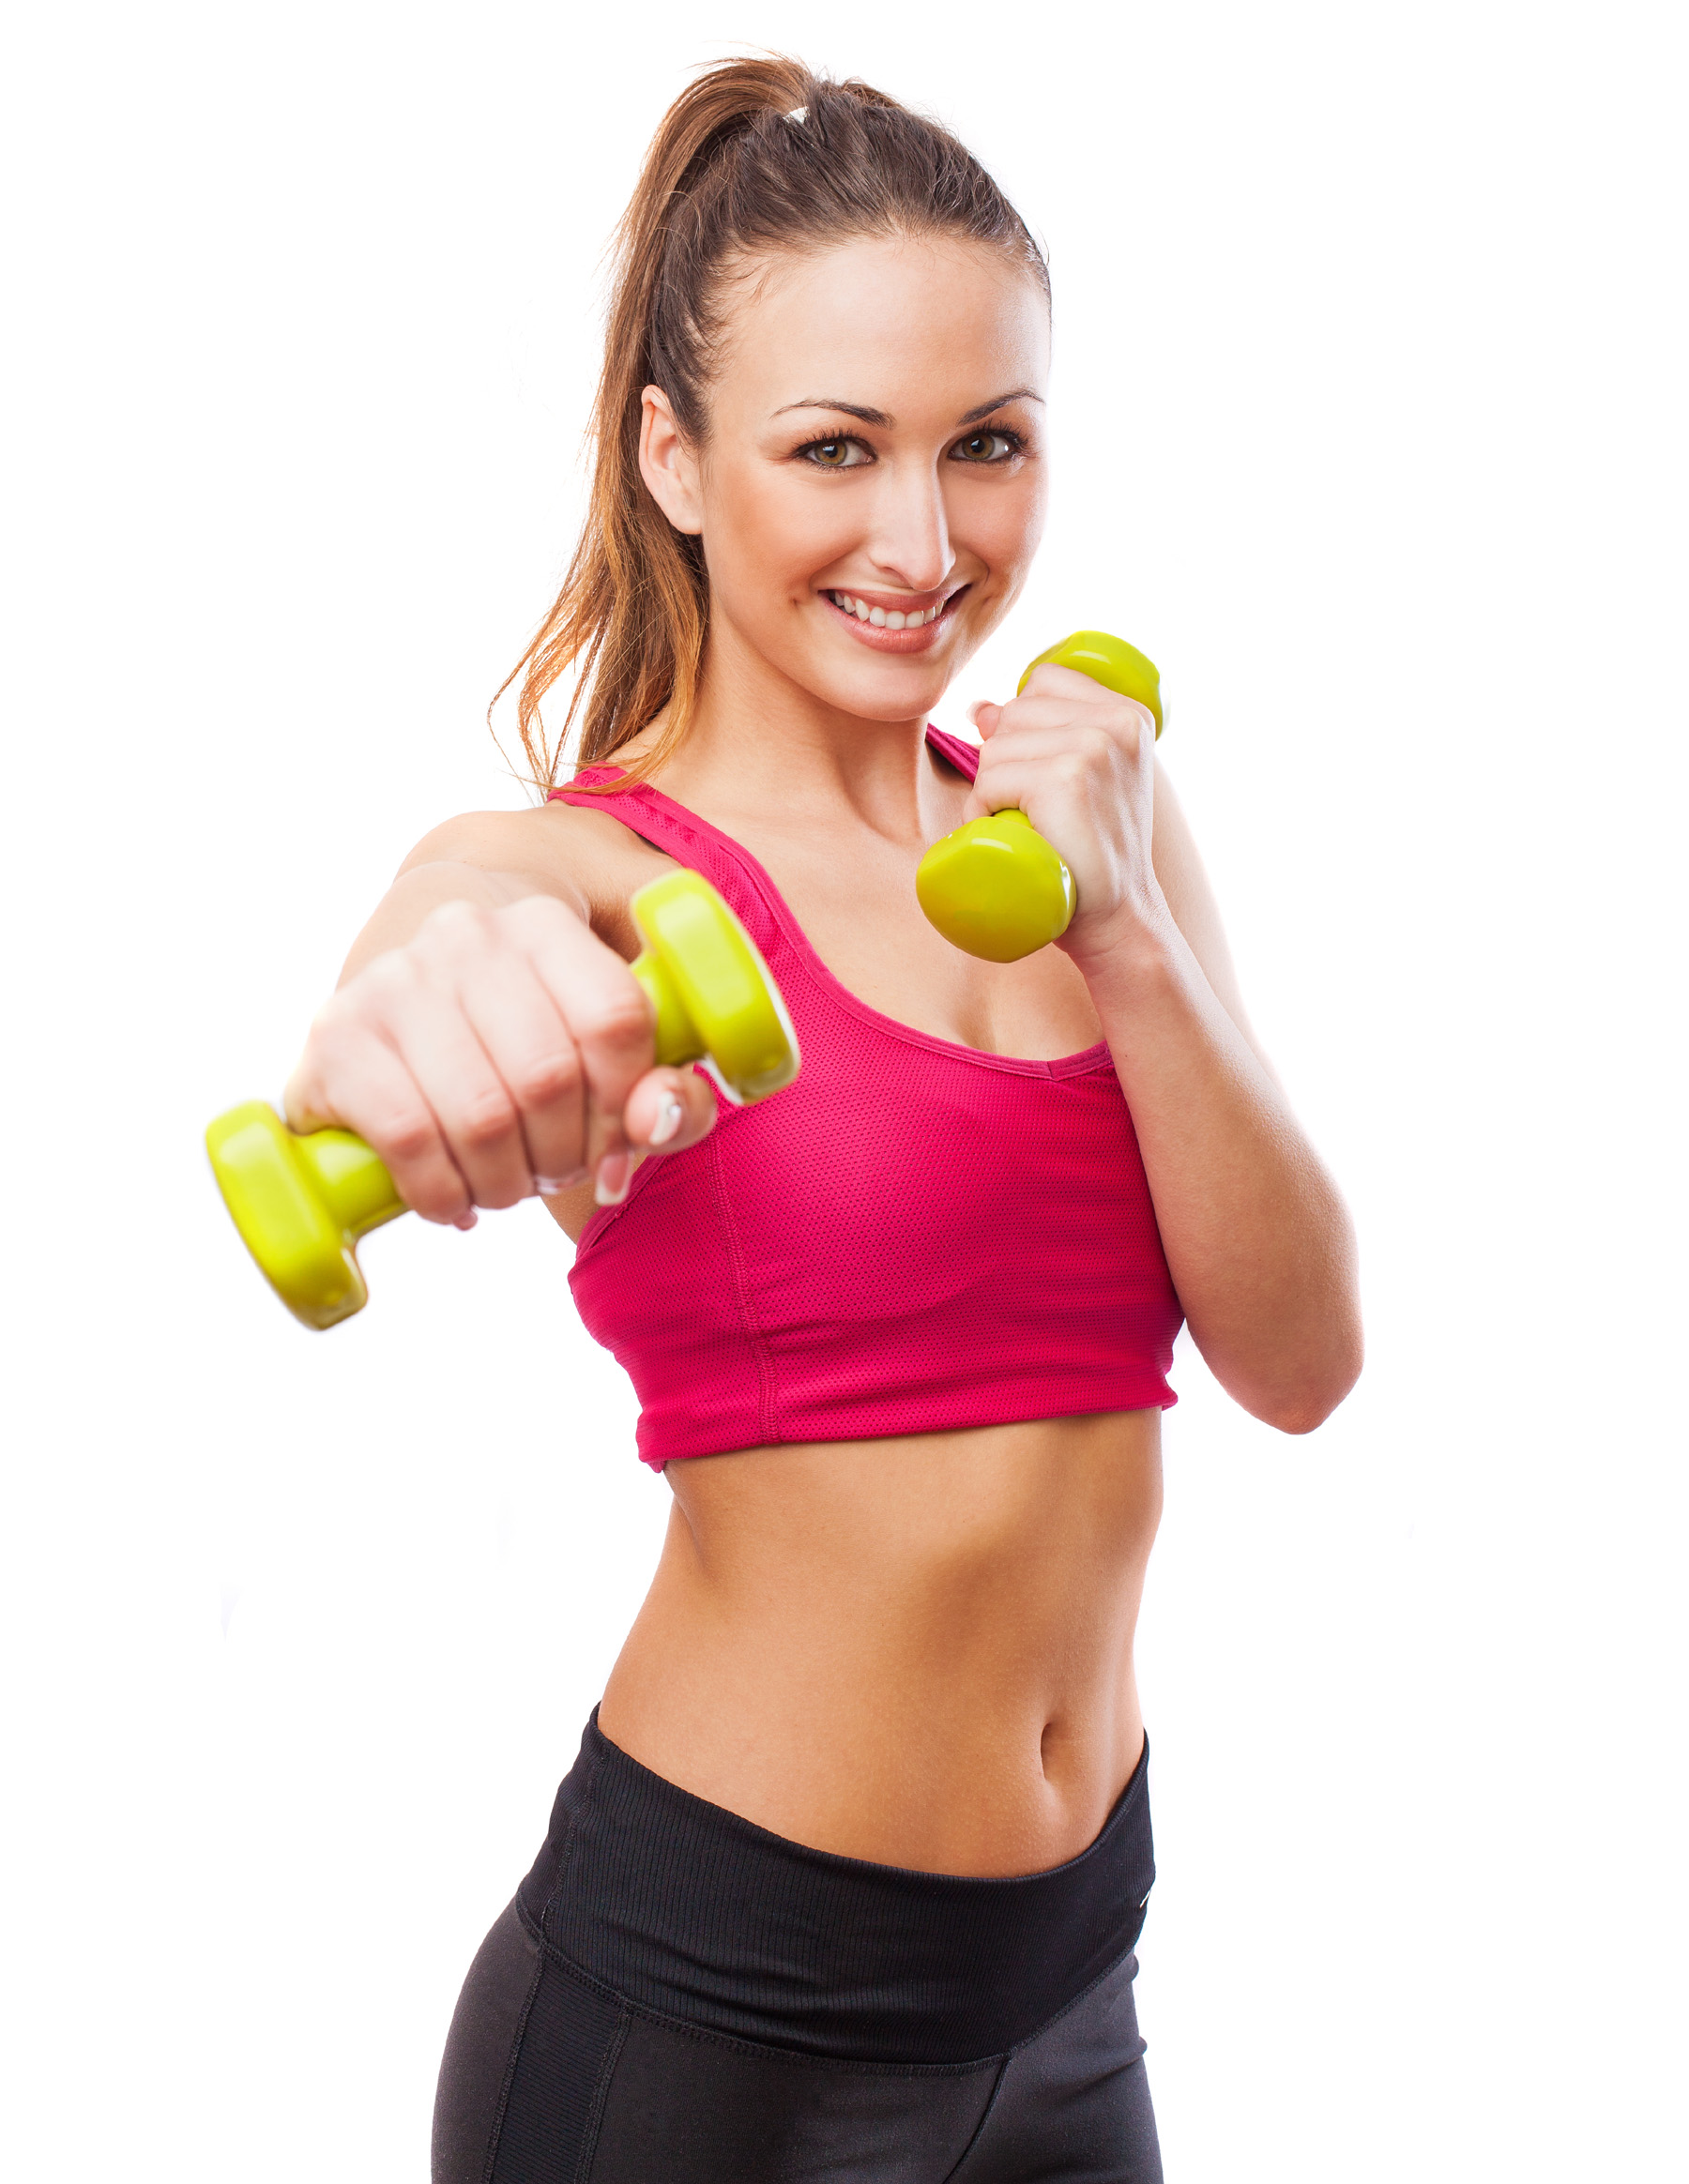 Holding dumbbell fitness beauties 52070